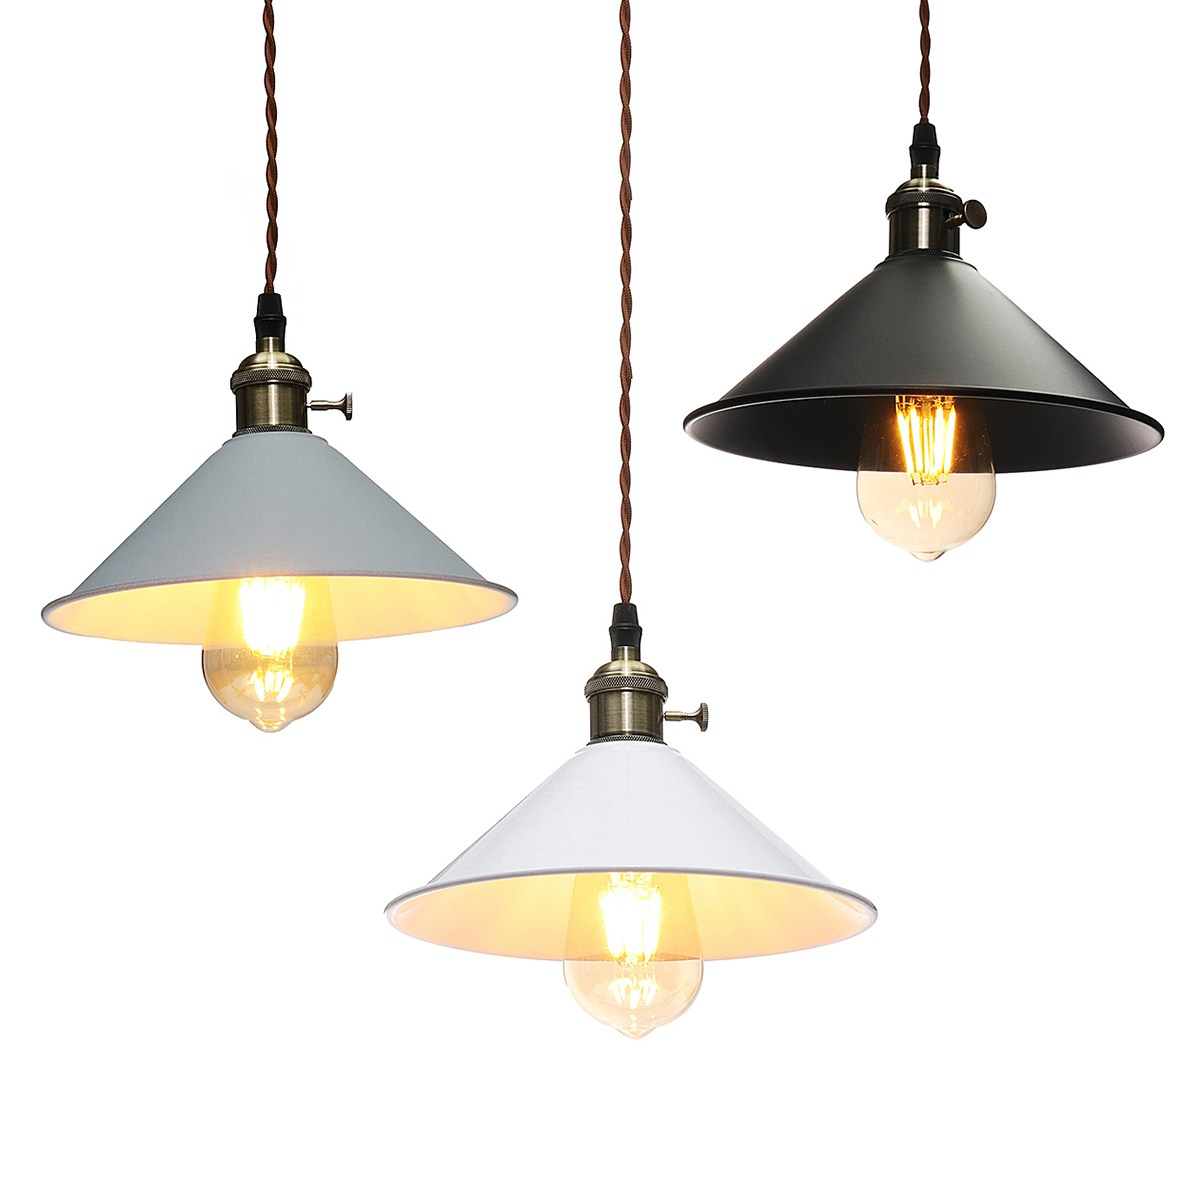 Modern Iron Pendant Lights E27 Edison Bulb LED Hanging Lamp Decor Pendant Lamp Fixtures For Bedroom Dining Room Bar Cafe vintage nordic iron cage pendant lights led e27 edison bulb pendant ls loft cafe bar restaurant decorative hanging lamps